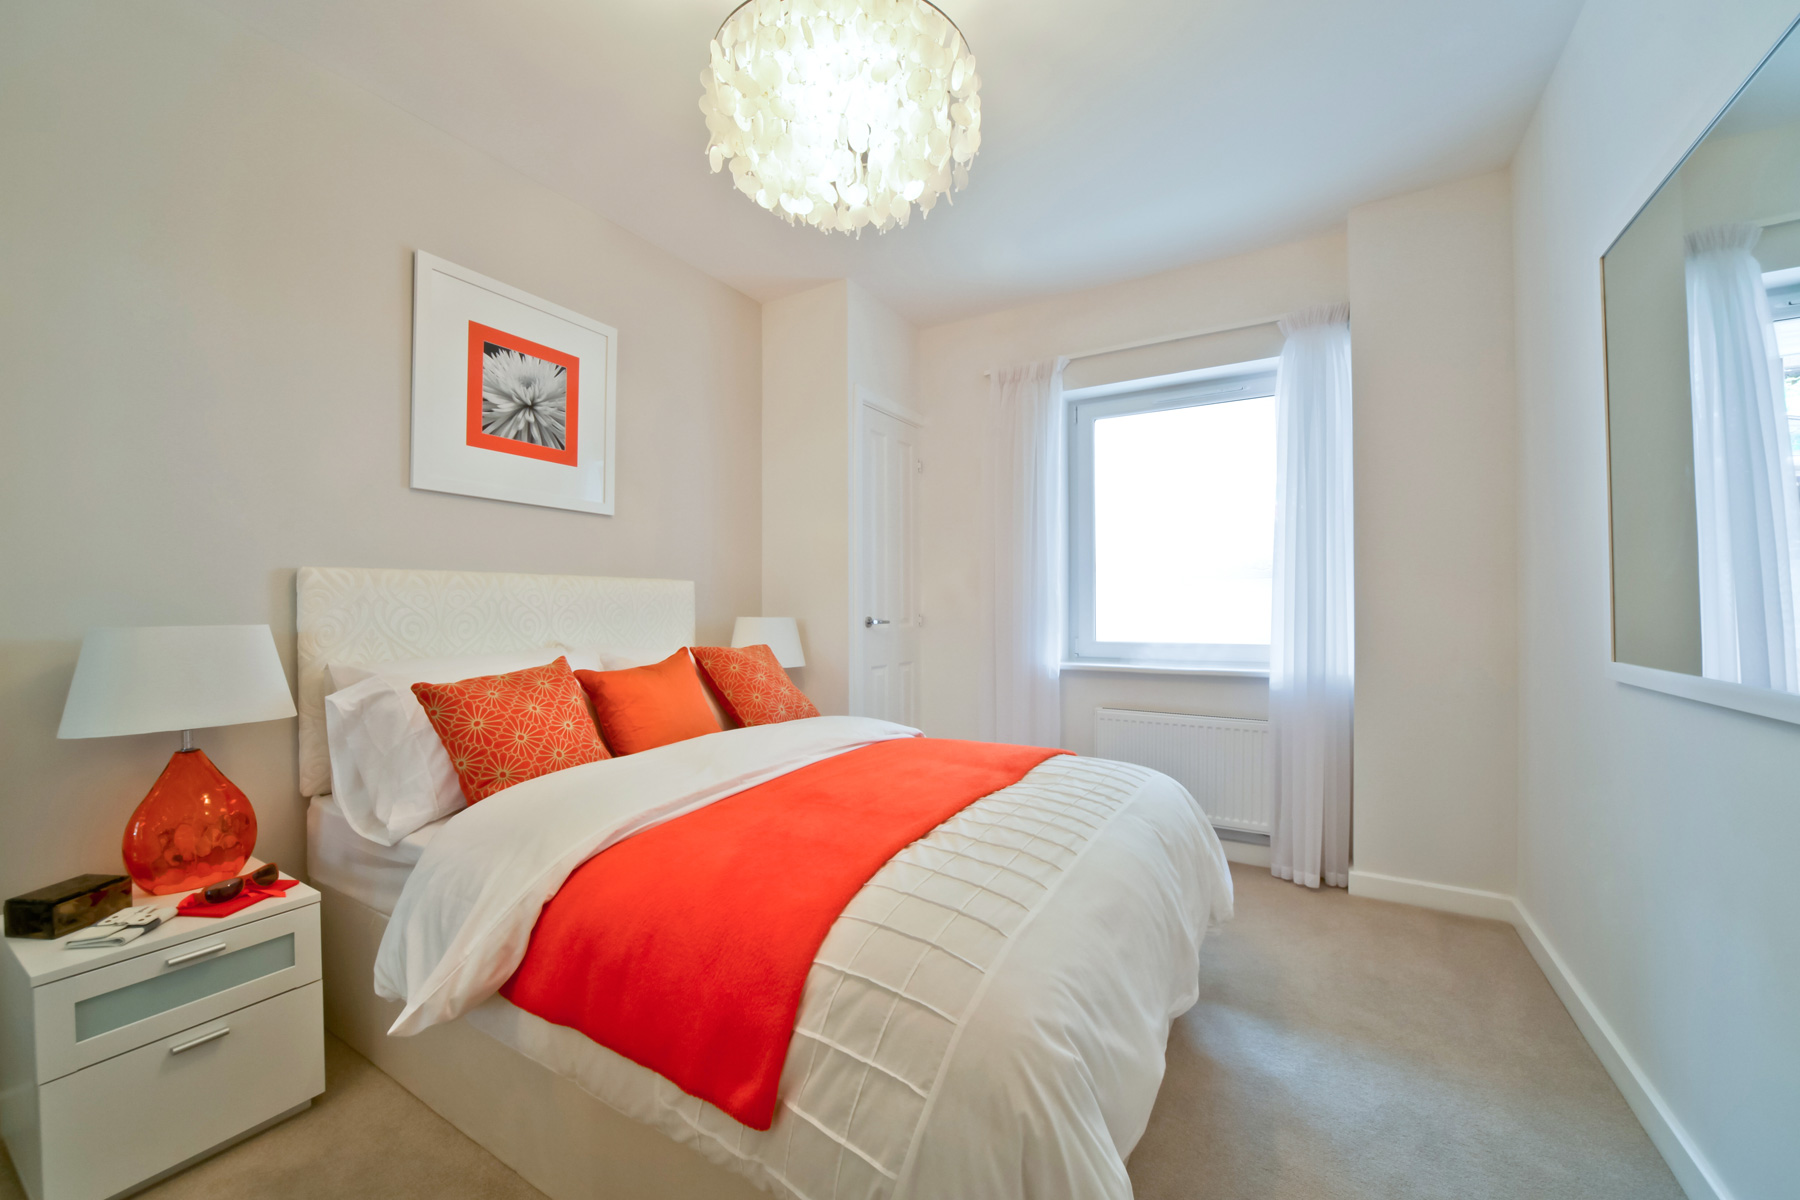 A typical Taylor Wimpey apartment bedroom.